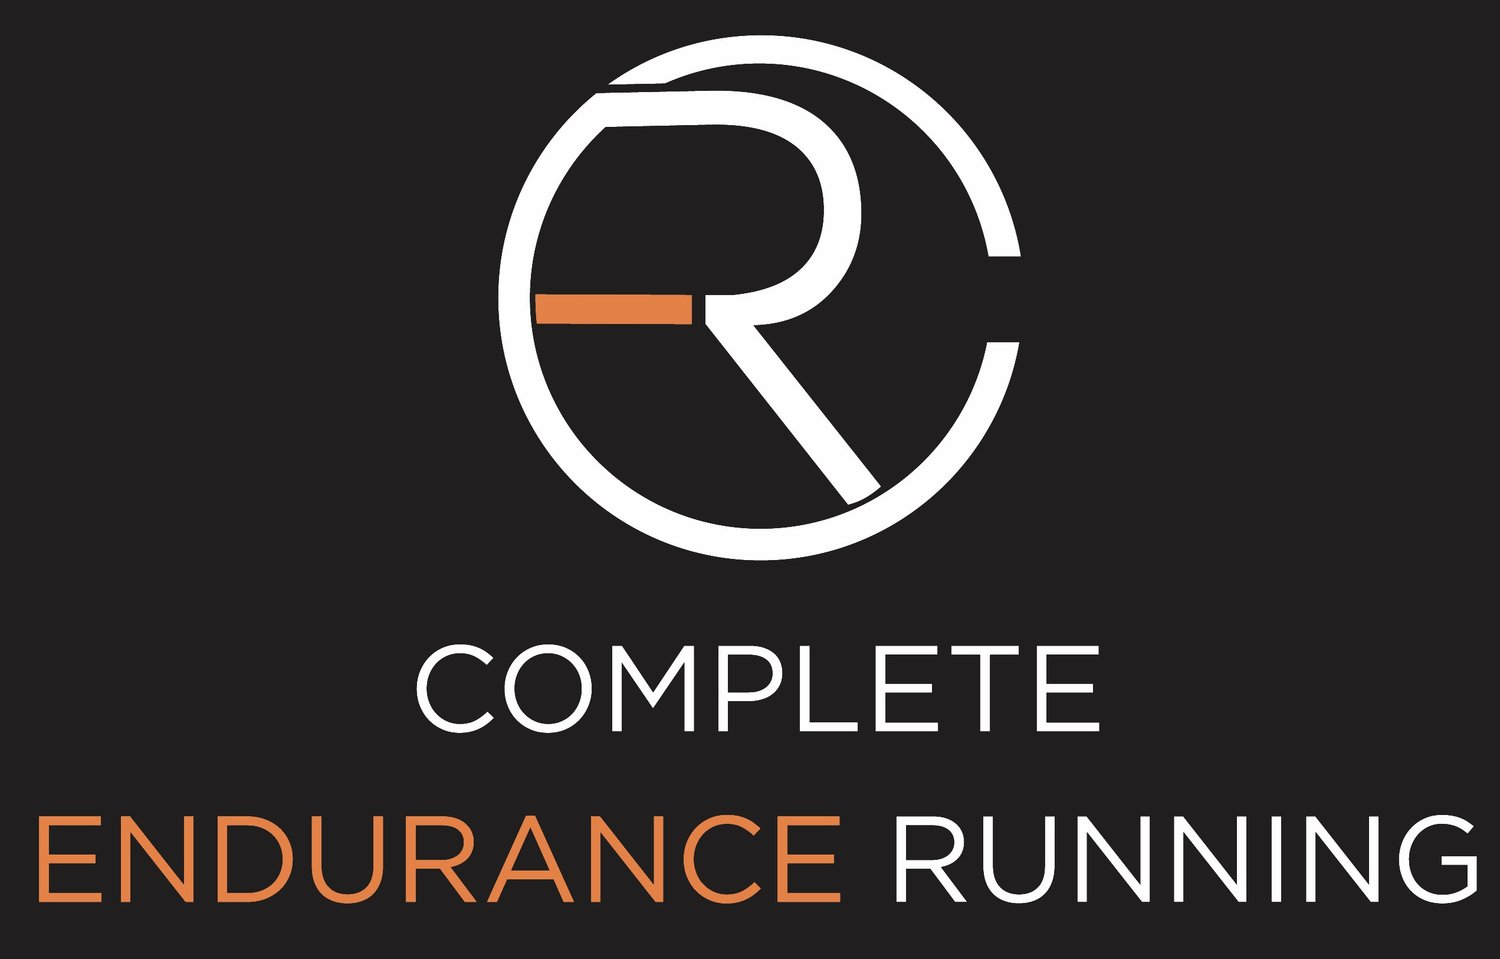 Complete Endurance Running